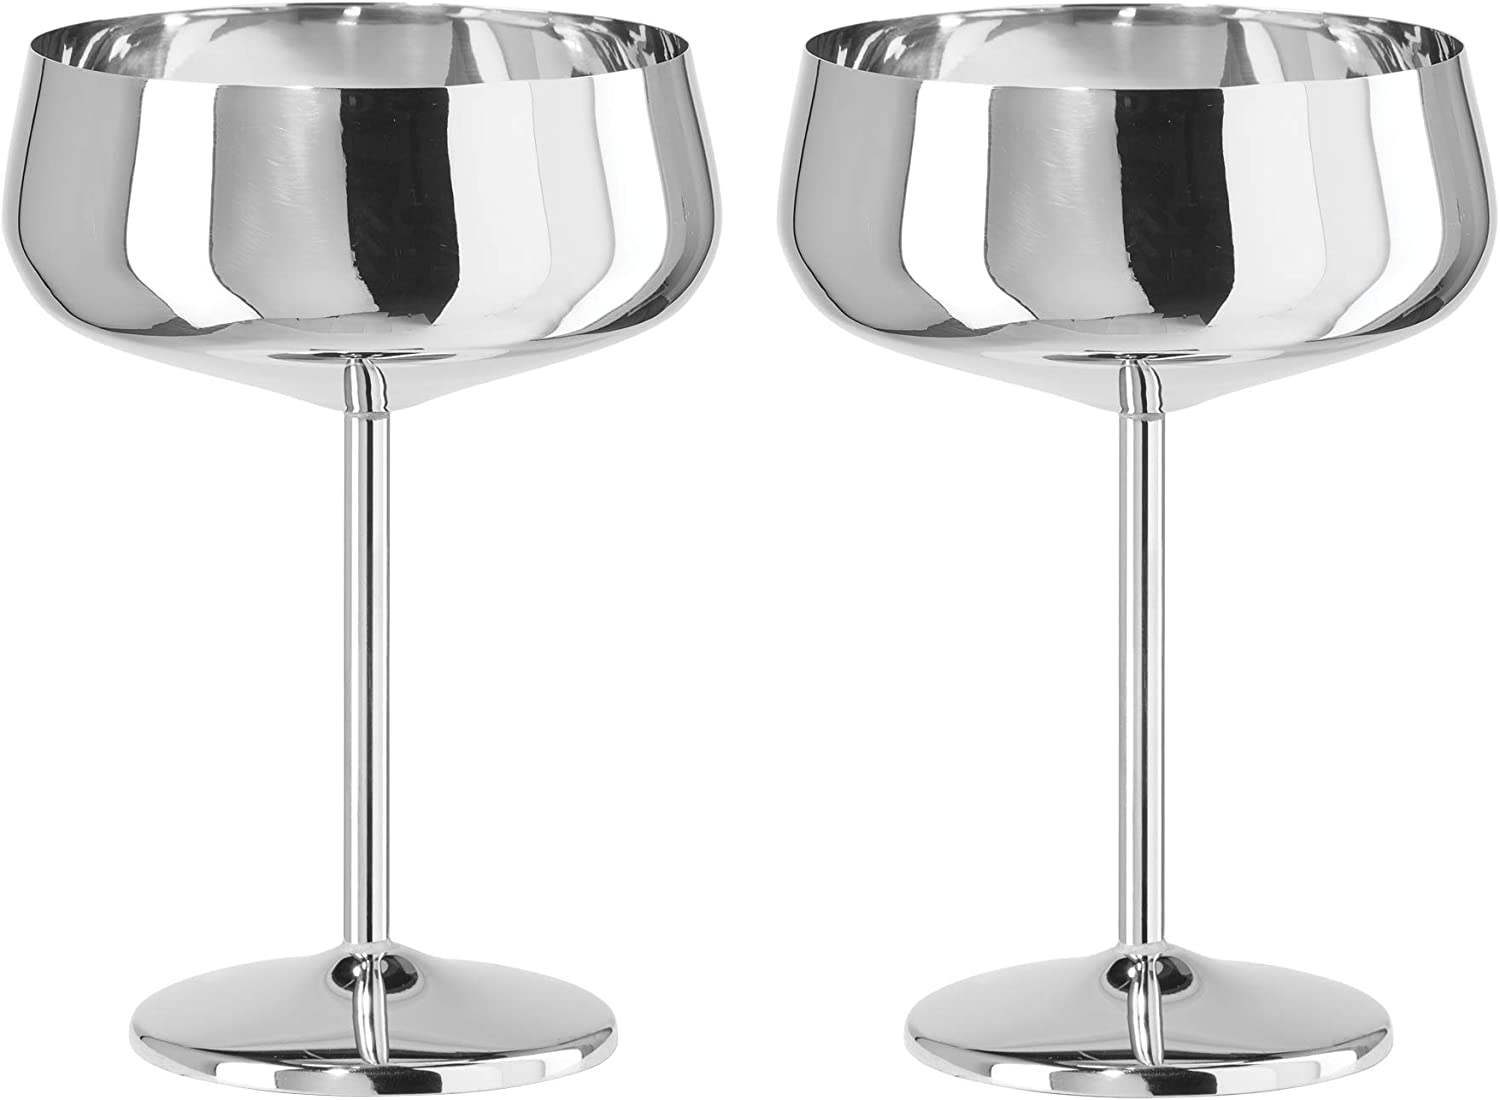 16 Ounce Oggi Stainless Steel Coupe Cocktail Goblets s//2-16 oz Silver